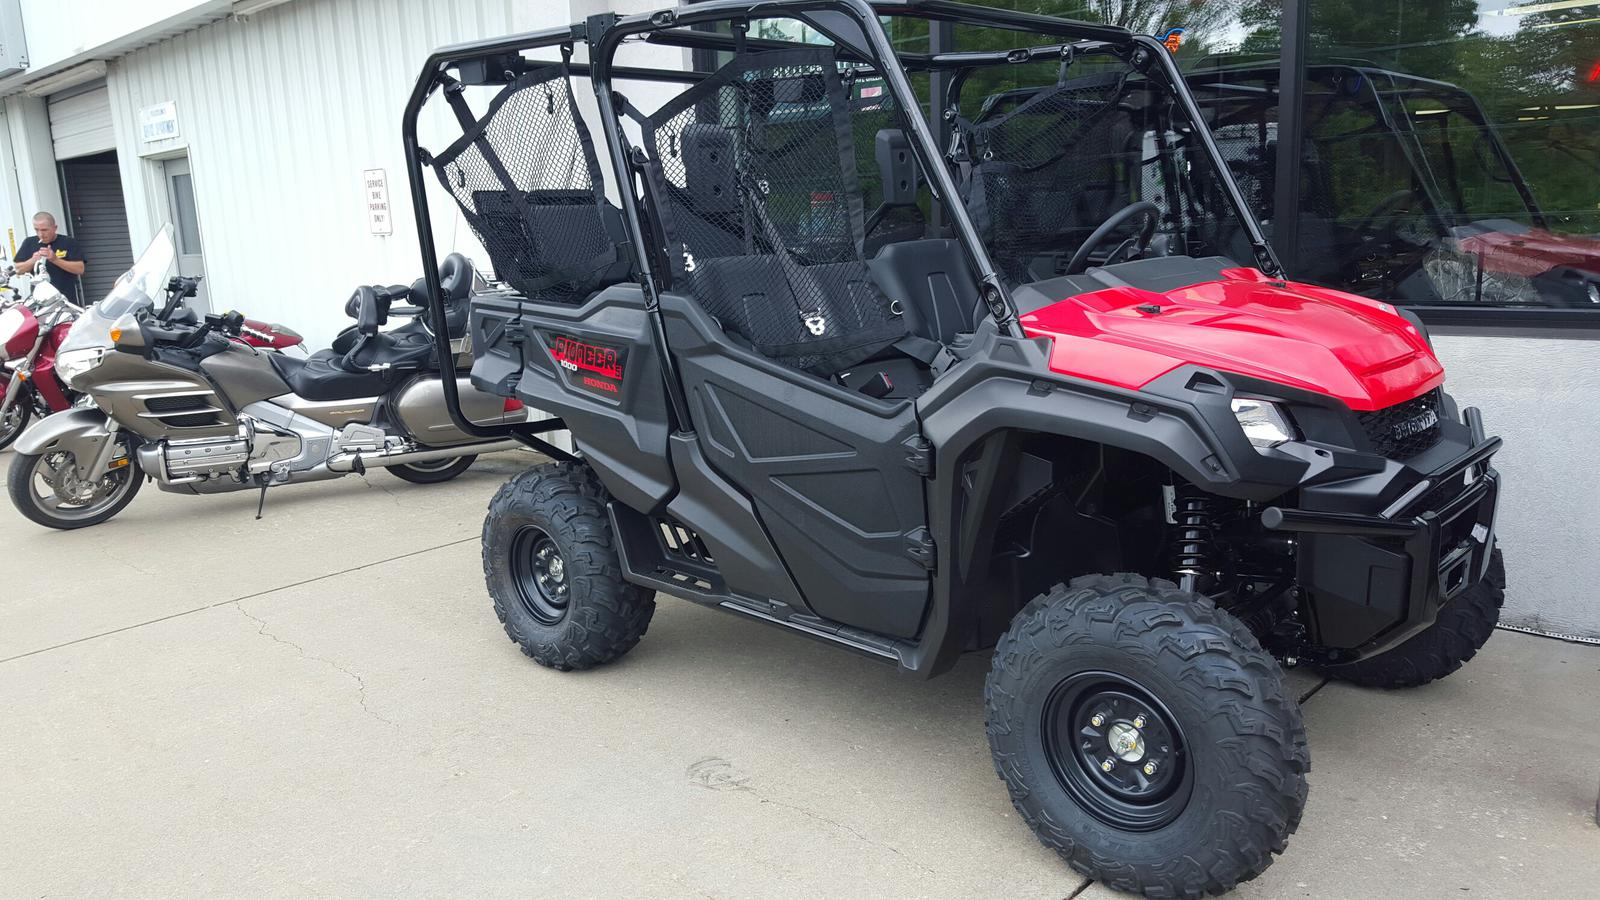 2016 Honda PIONEER 1000-5 for sale in Independence, MO